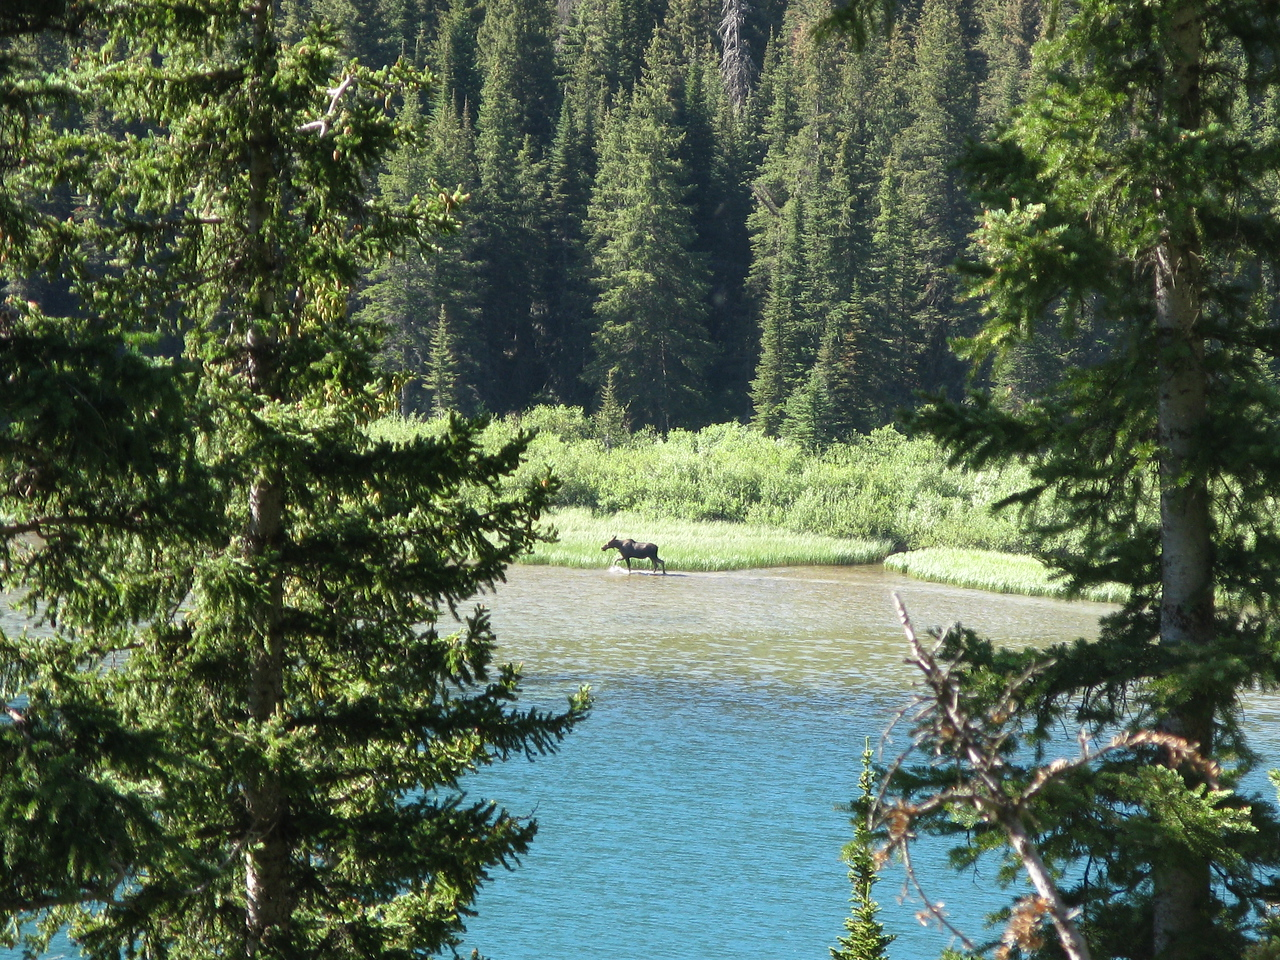 Near the head of Lake Josephine, we saw this moose at the edge of the water.